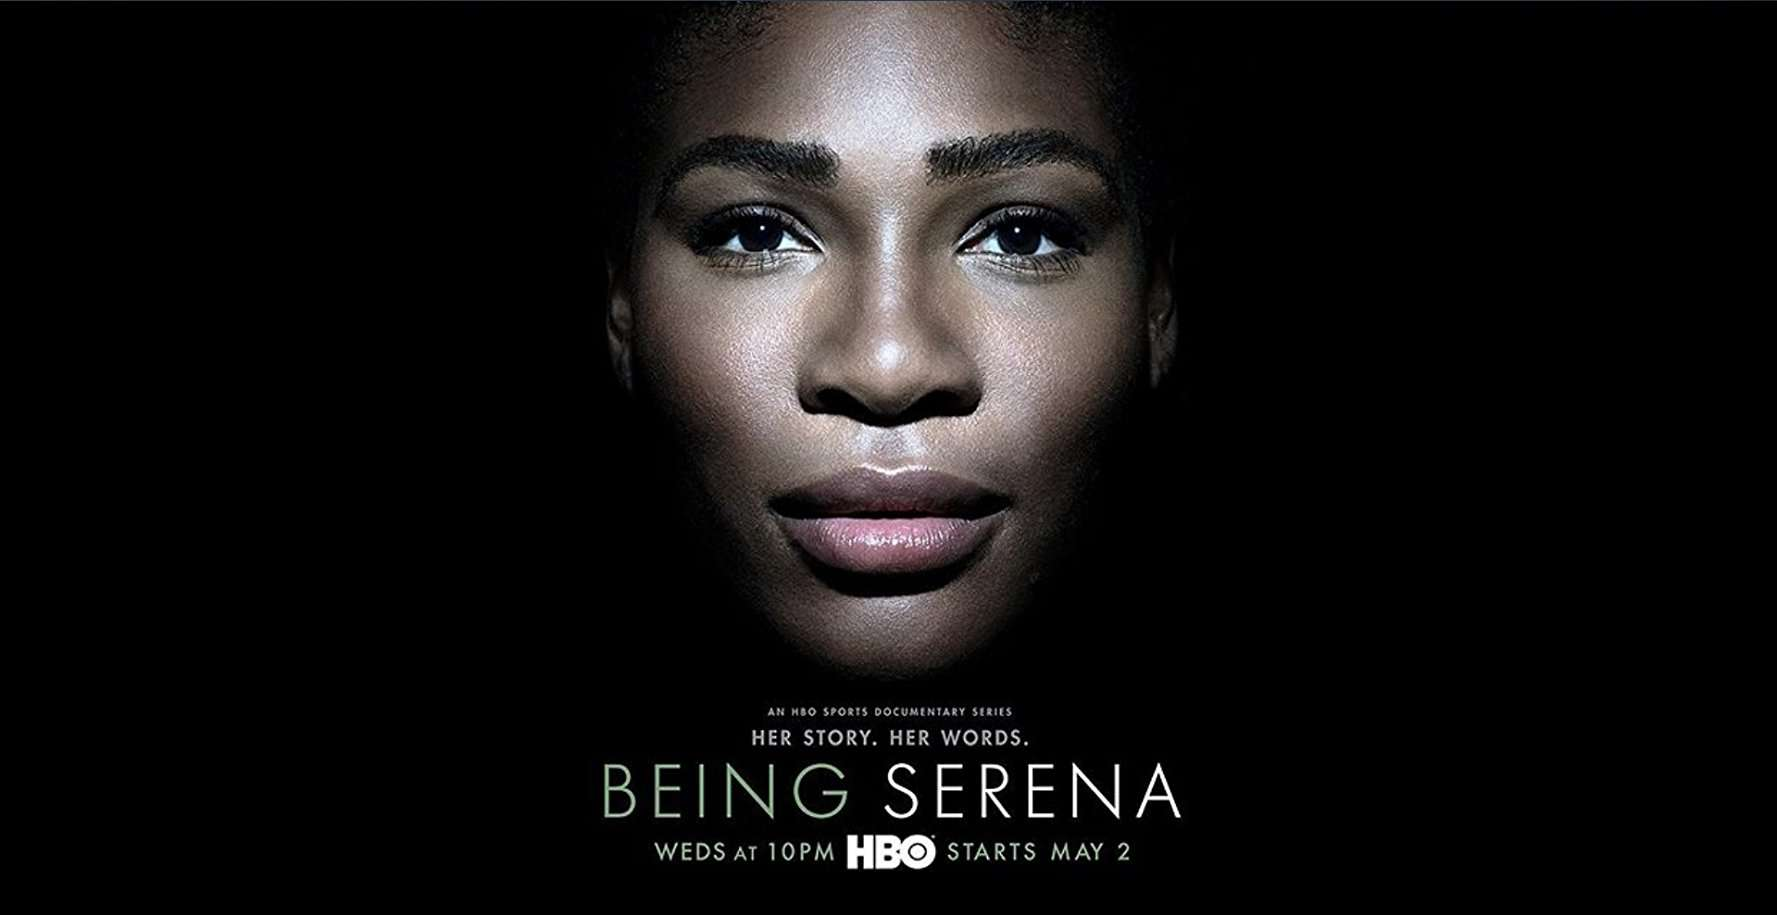 Being Serena S01E05 HDTV x264-aAF